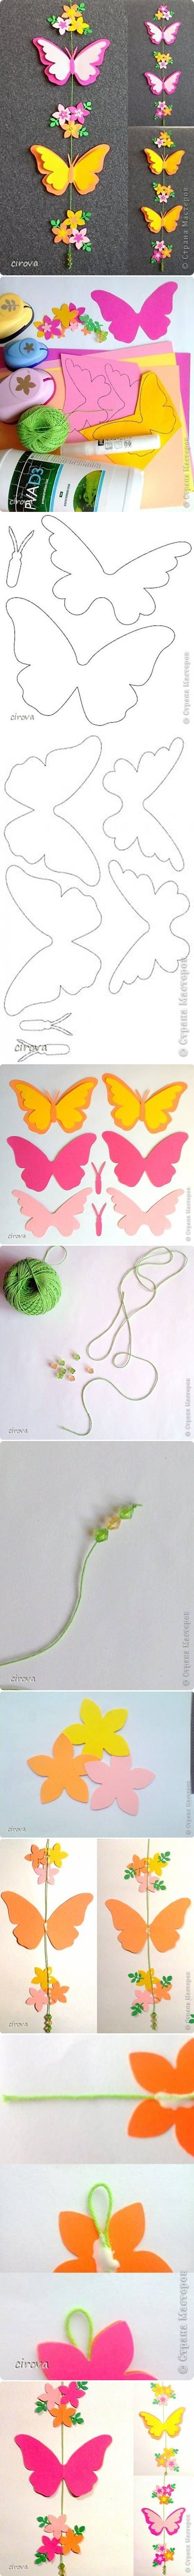 DIY Paper Butterfly Mobile DIY Projects